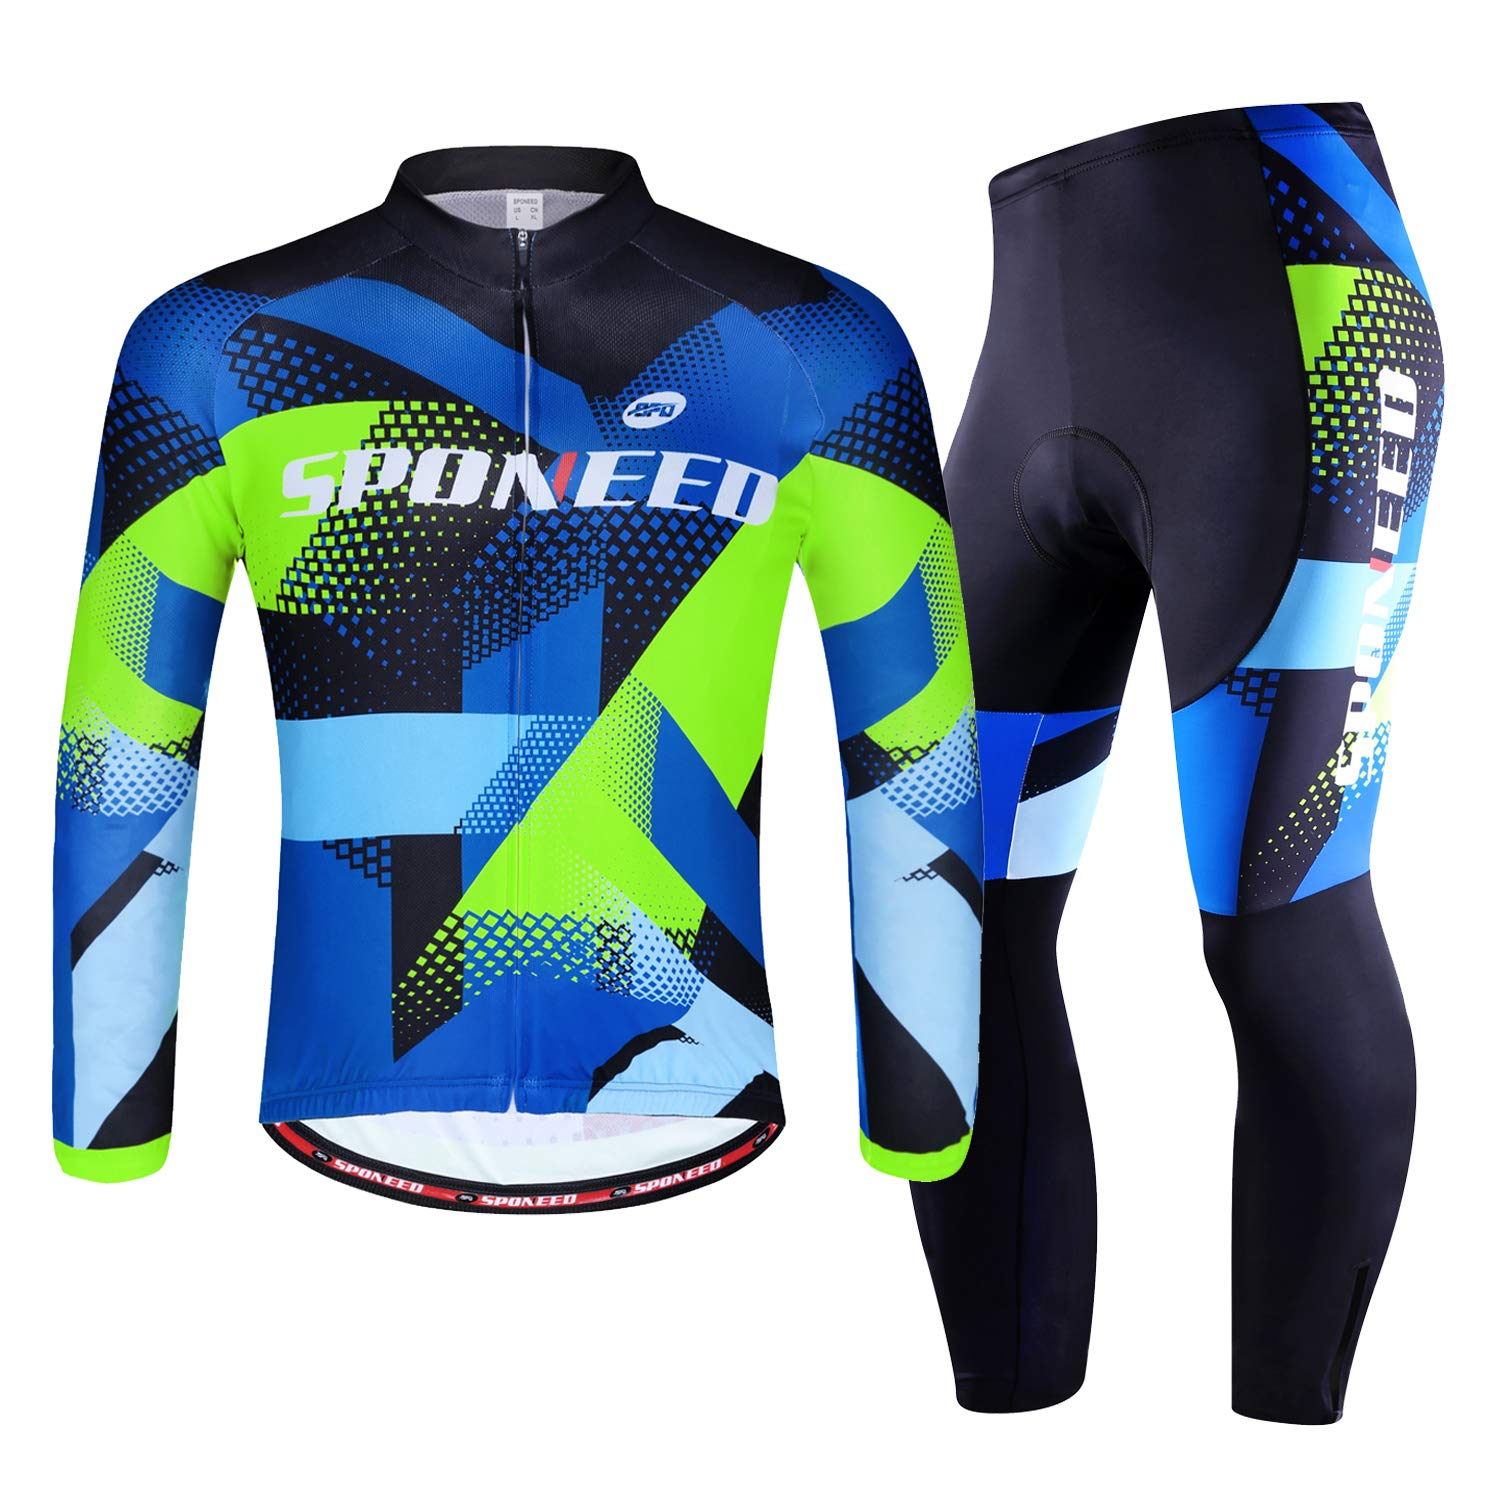 sponeed Cycling Clothes for Men Long Sleeve Mountain Bike Road Bicycle  Shirt Jeresys Pants Padded Bike Jakcet Outfit 4f4dd8a16